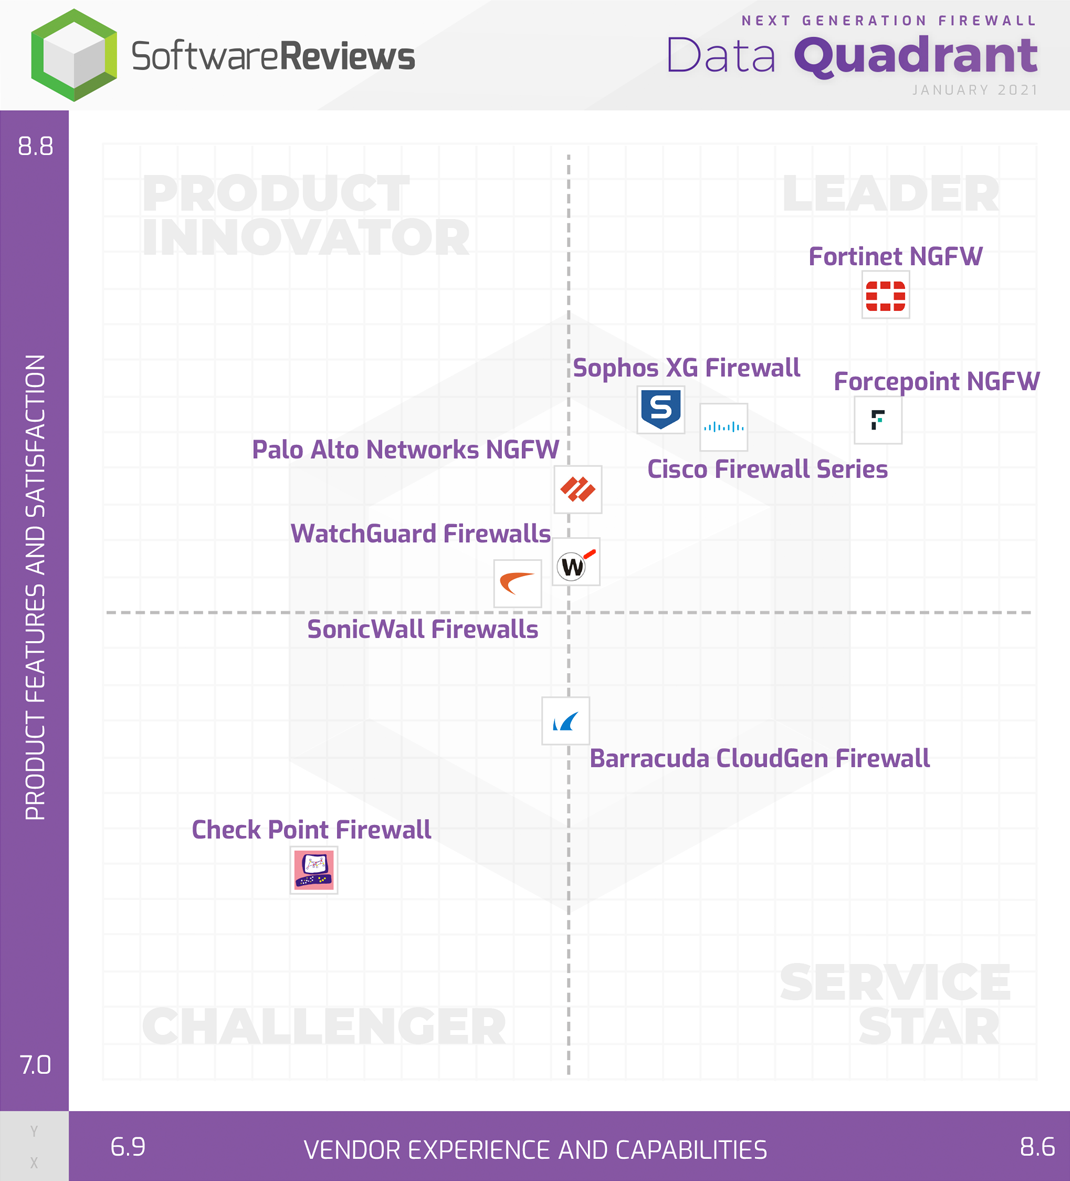 Next Generation Firewall Data Quadrant